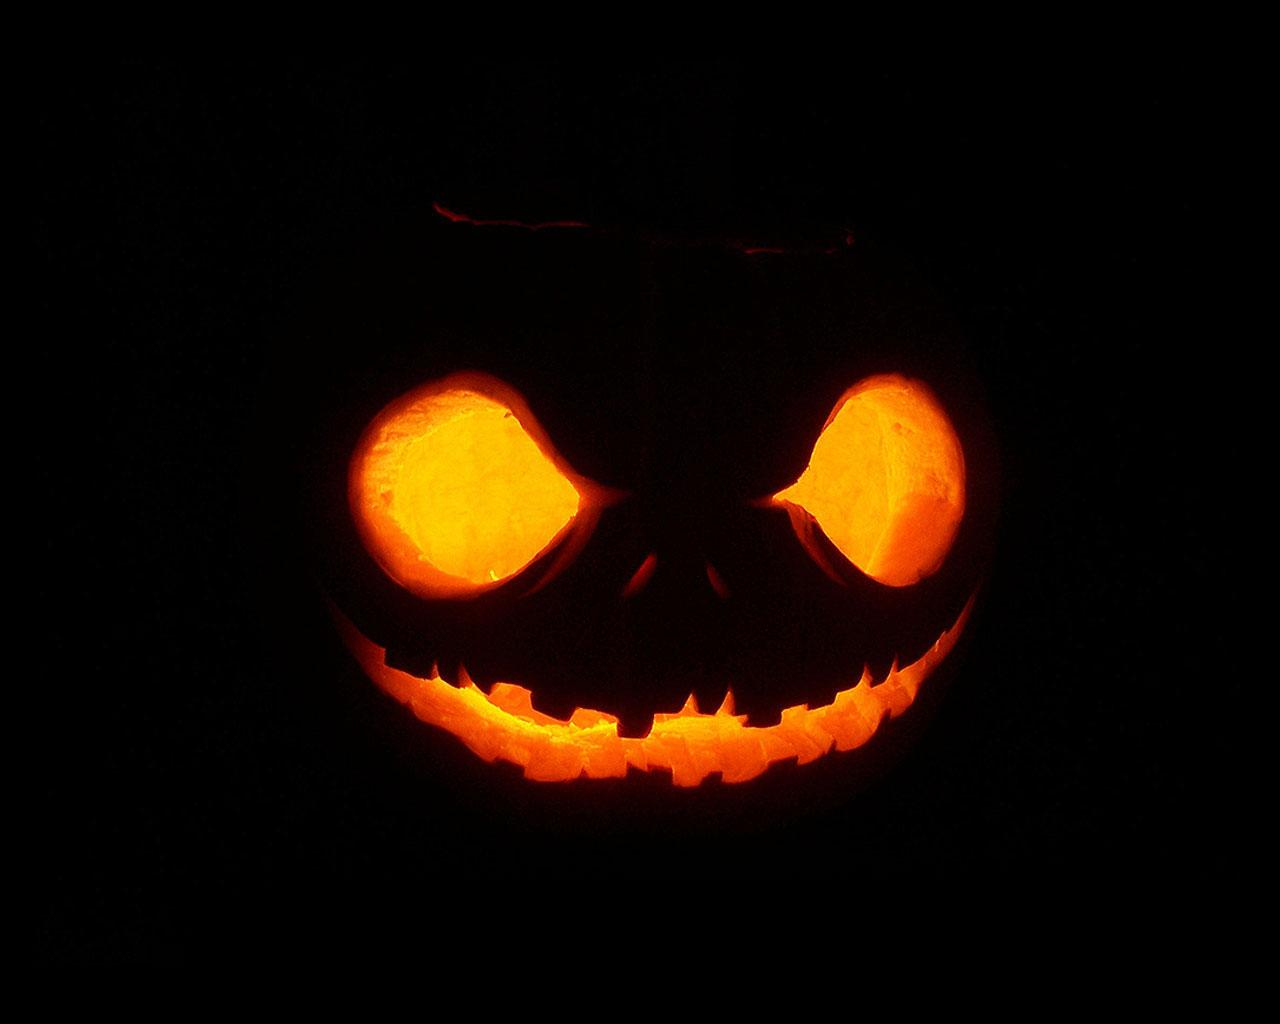 Free Scary Halloween Backgrounds & Wallpapers Collection 2014